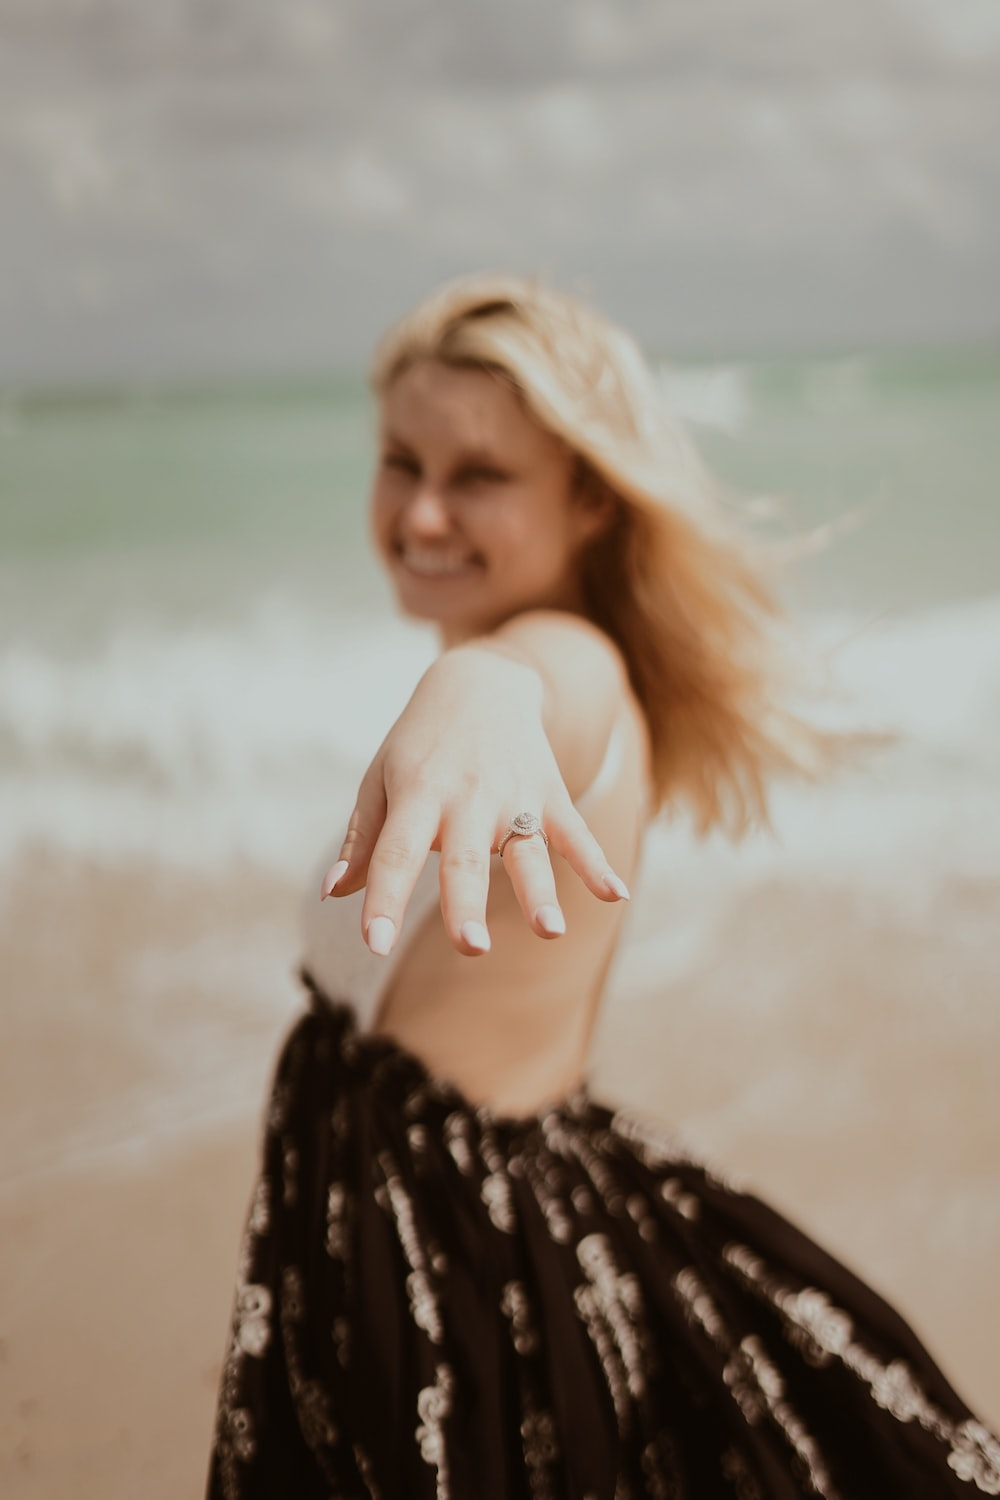 woman showing silver-colored ring